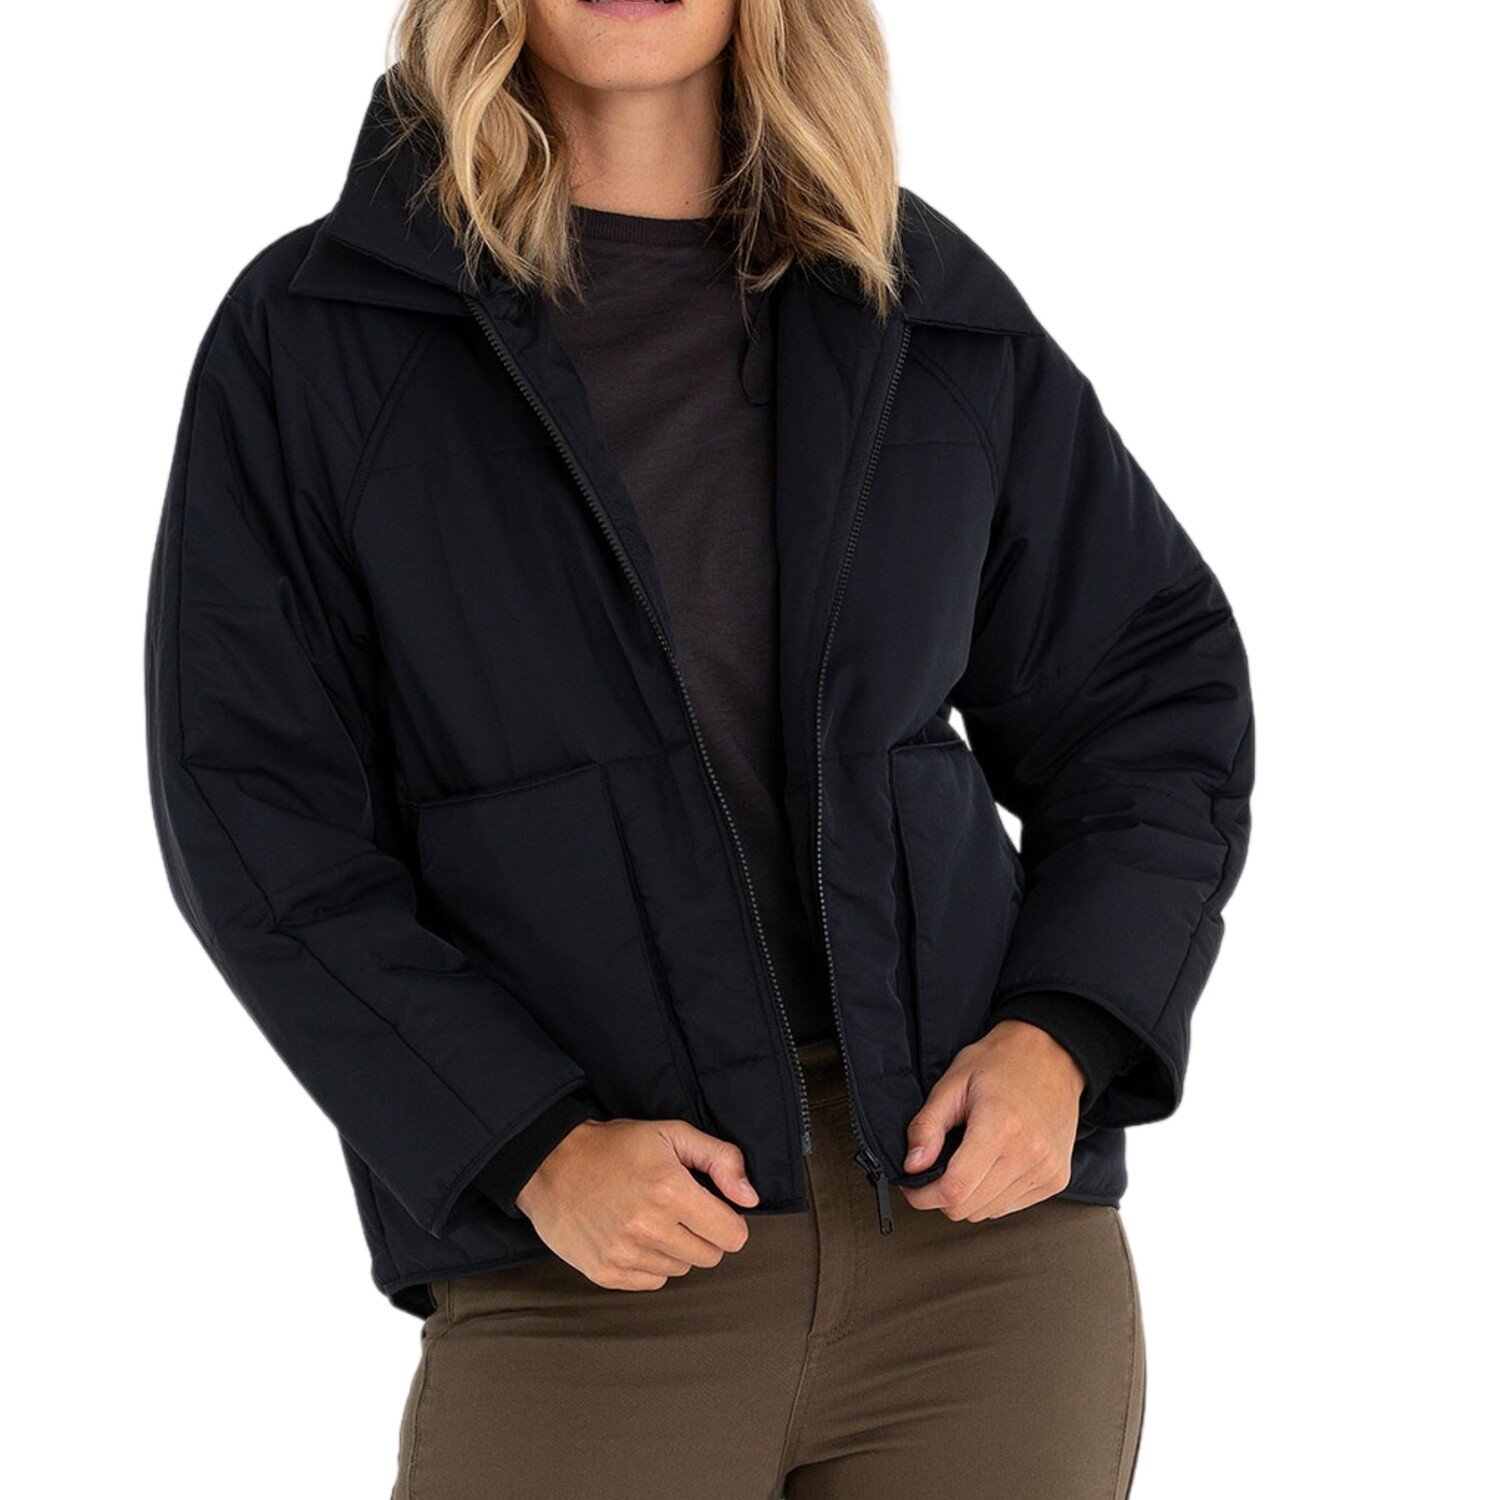 Relaxed Puffer Jacket by Marco Polo